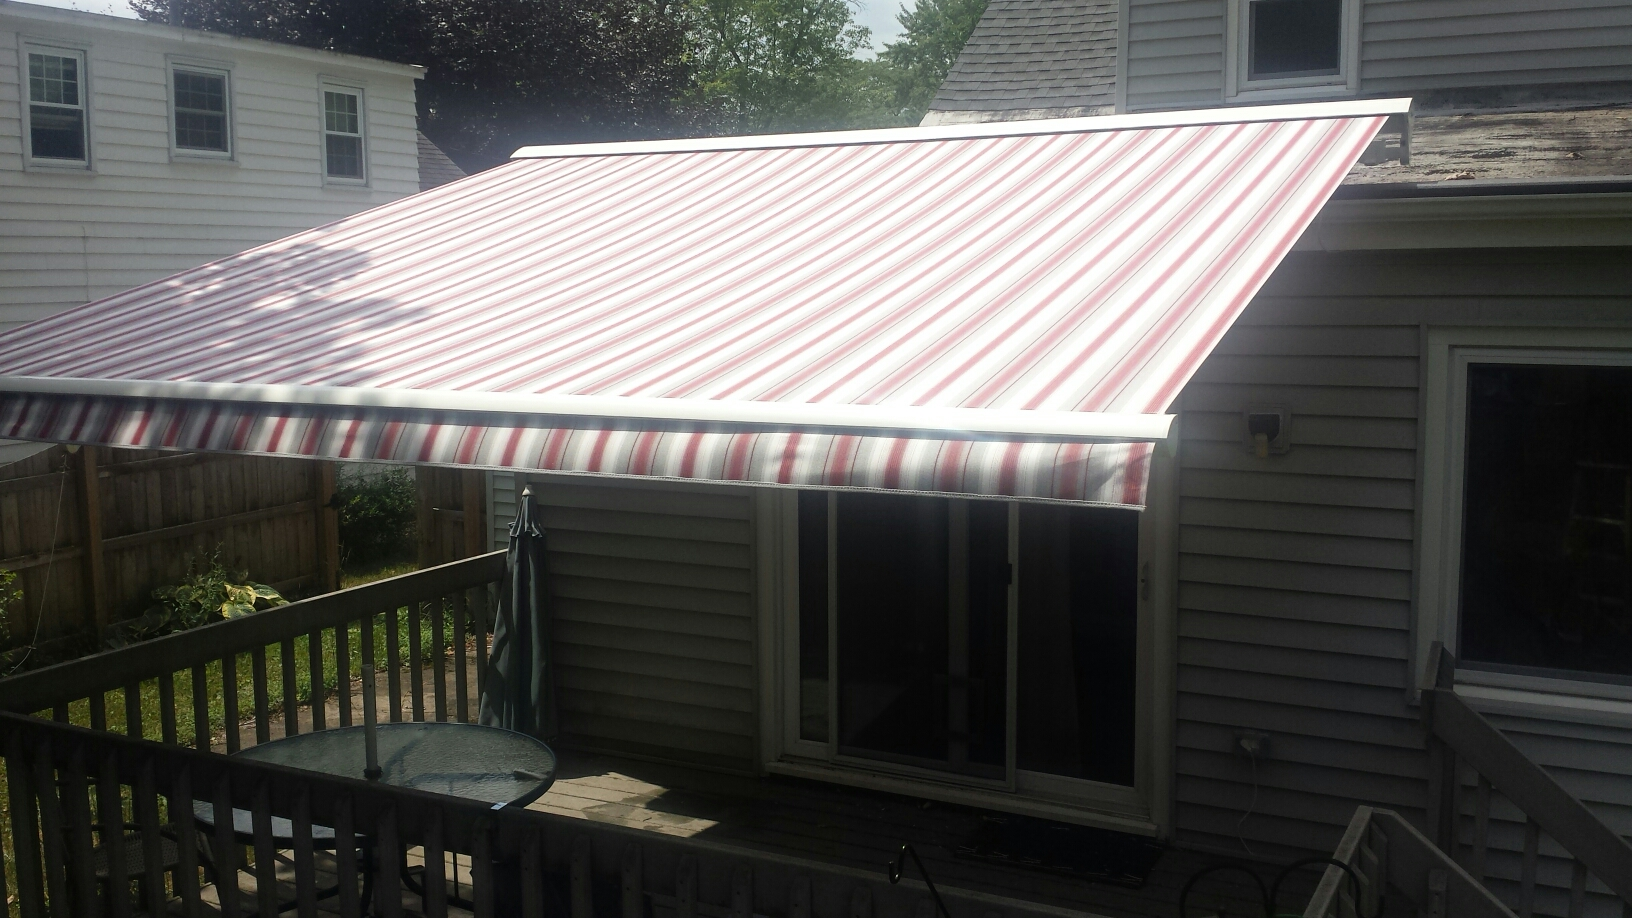 Syracuse, NY - Expanding outdoor living space with a retractable awning